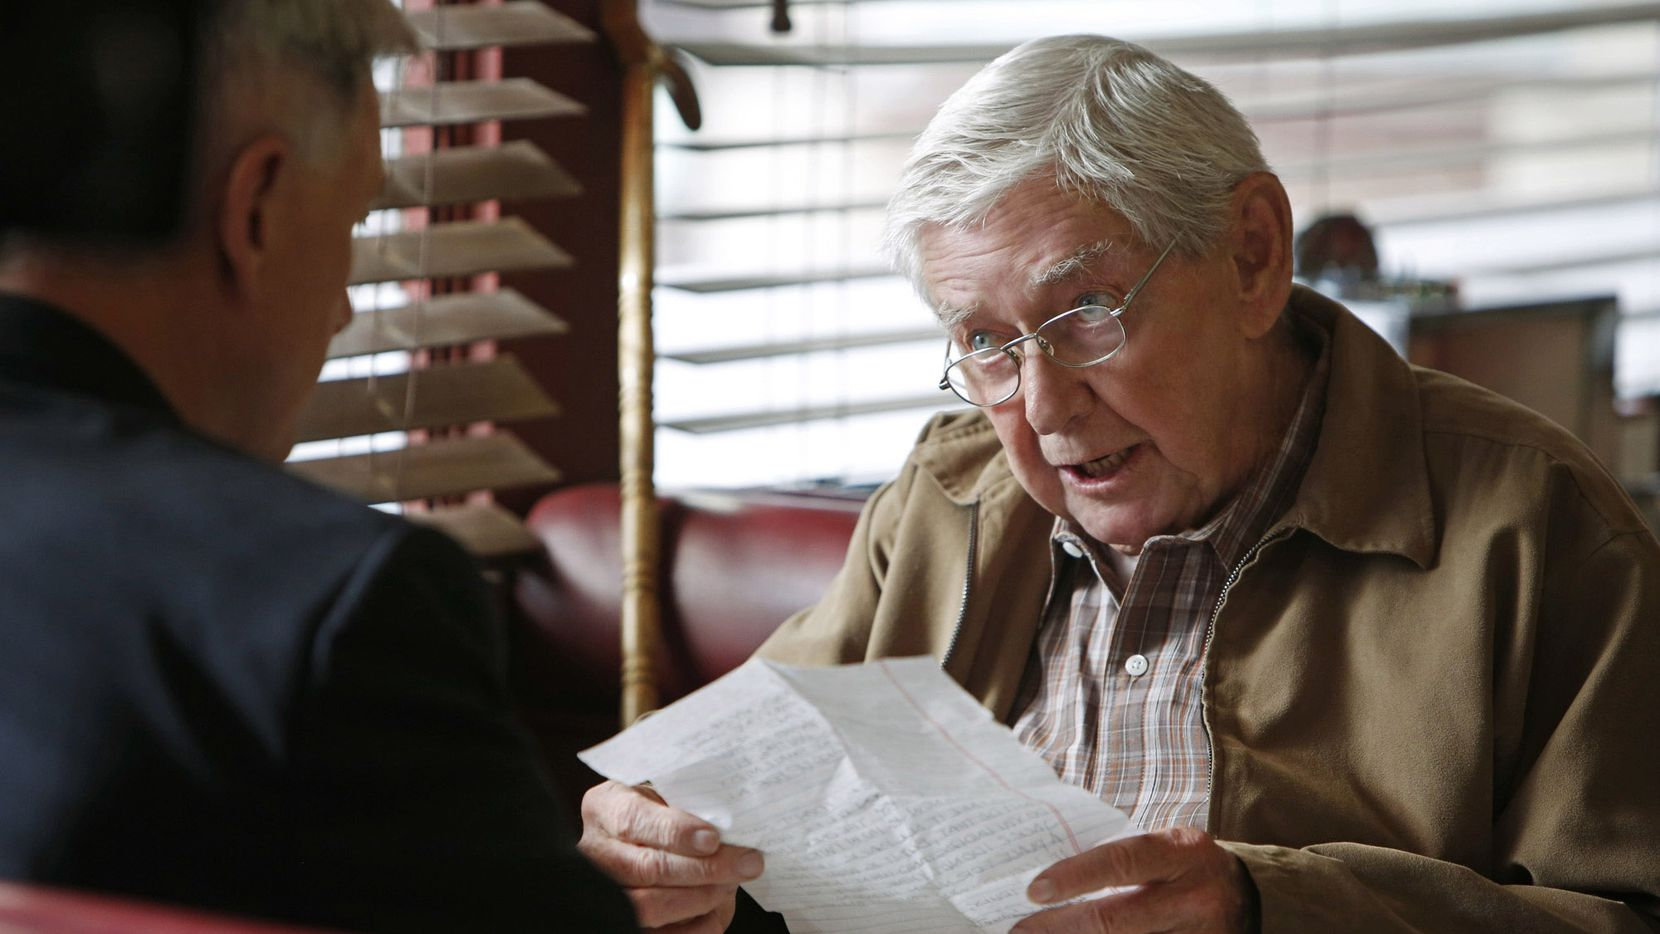 """This photo released by CBS shows Mark Harmon, left, as Leroy Jethro Gibbs, and Ralph Waite, as Jackson Gibbs, in an episode, """"Better Angels"""" in """"NCIS,"""" on the CBS Television Network. Waite, 85, who played the father in TV's hit series """"The Waltons,"""" has died. Waite's manager, Alan Mills, says the actor died midday Thursday, Feb. 13, 2014, in the Palm Springs area. (AP Photo/CBS, Cliff Lipson)"""